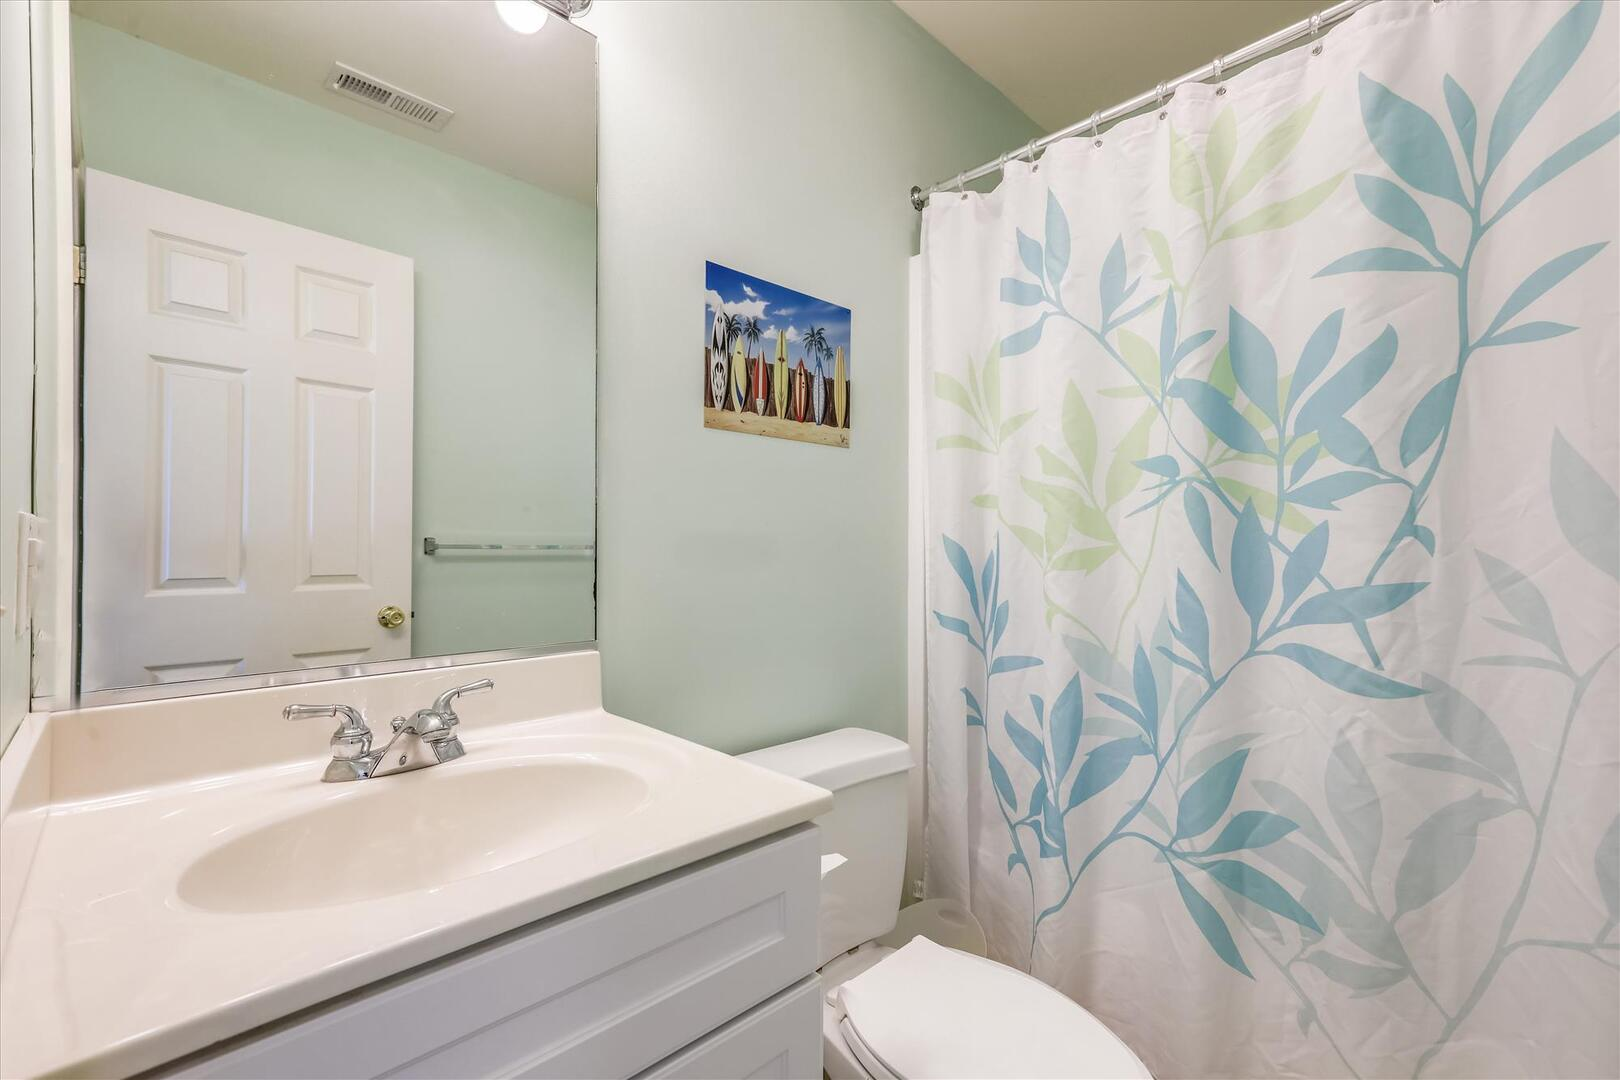 328 Sunset Drive B - Bathroom 2